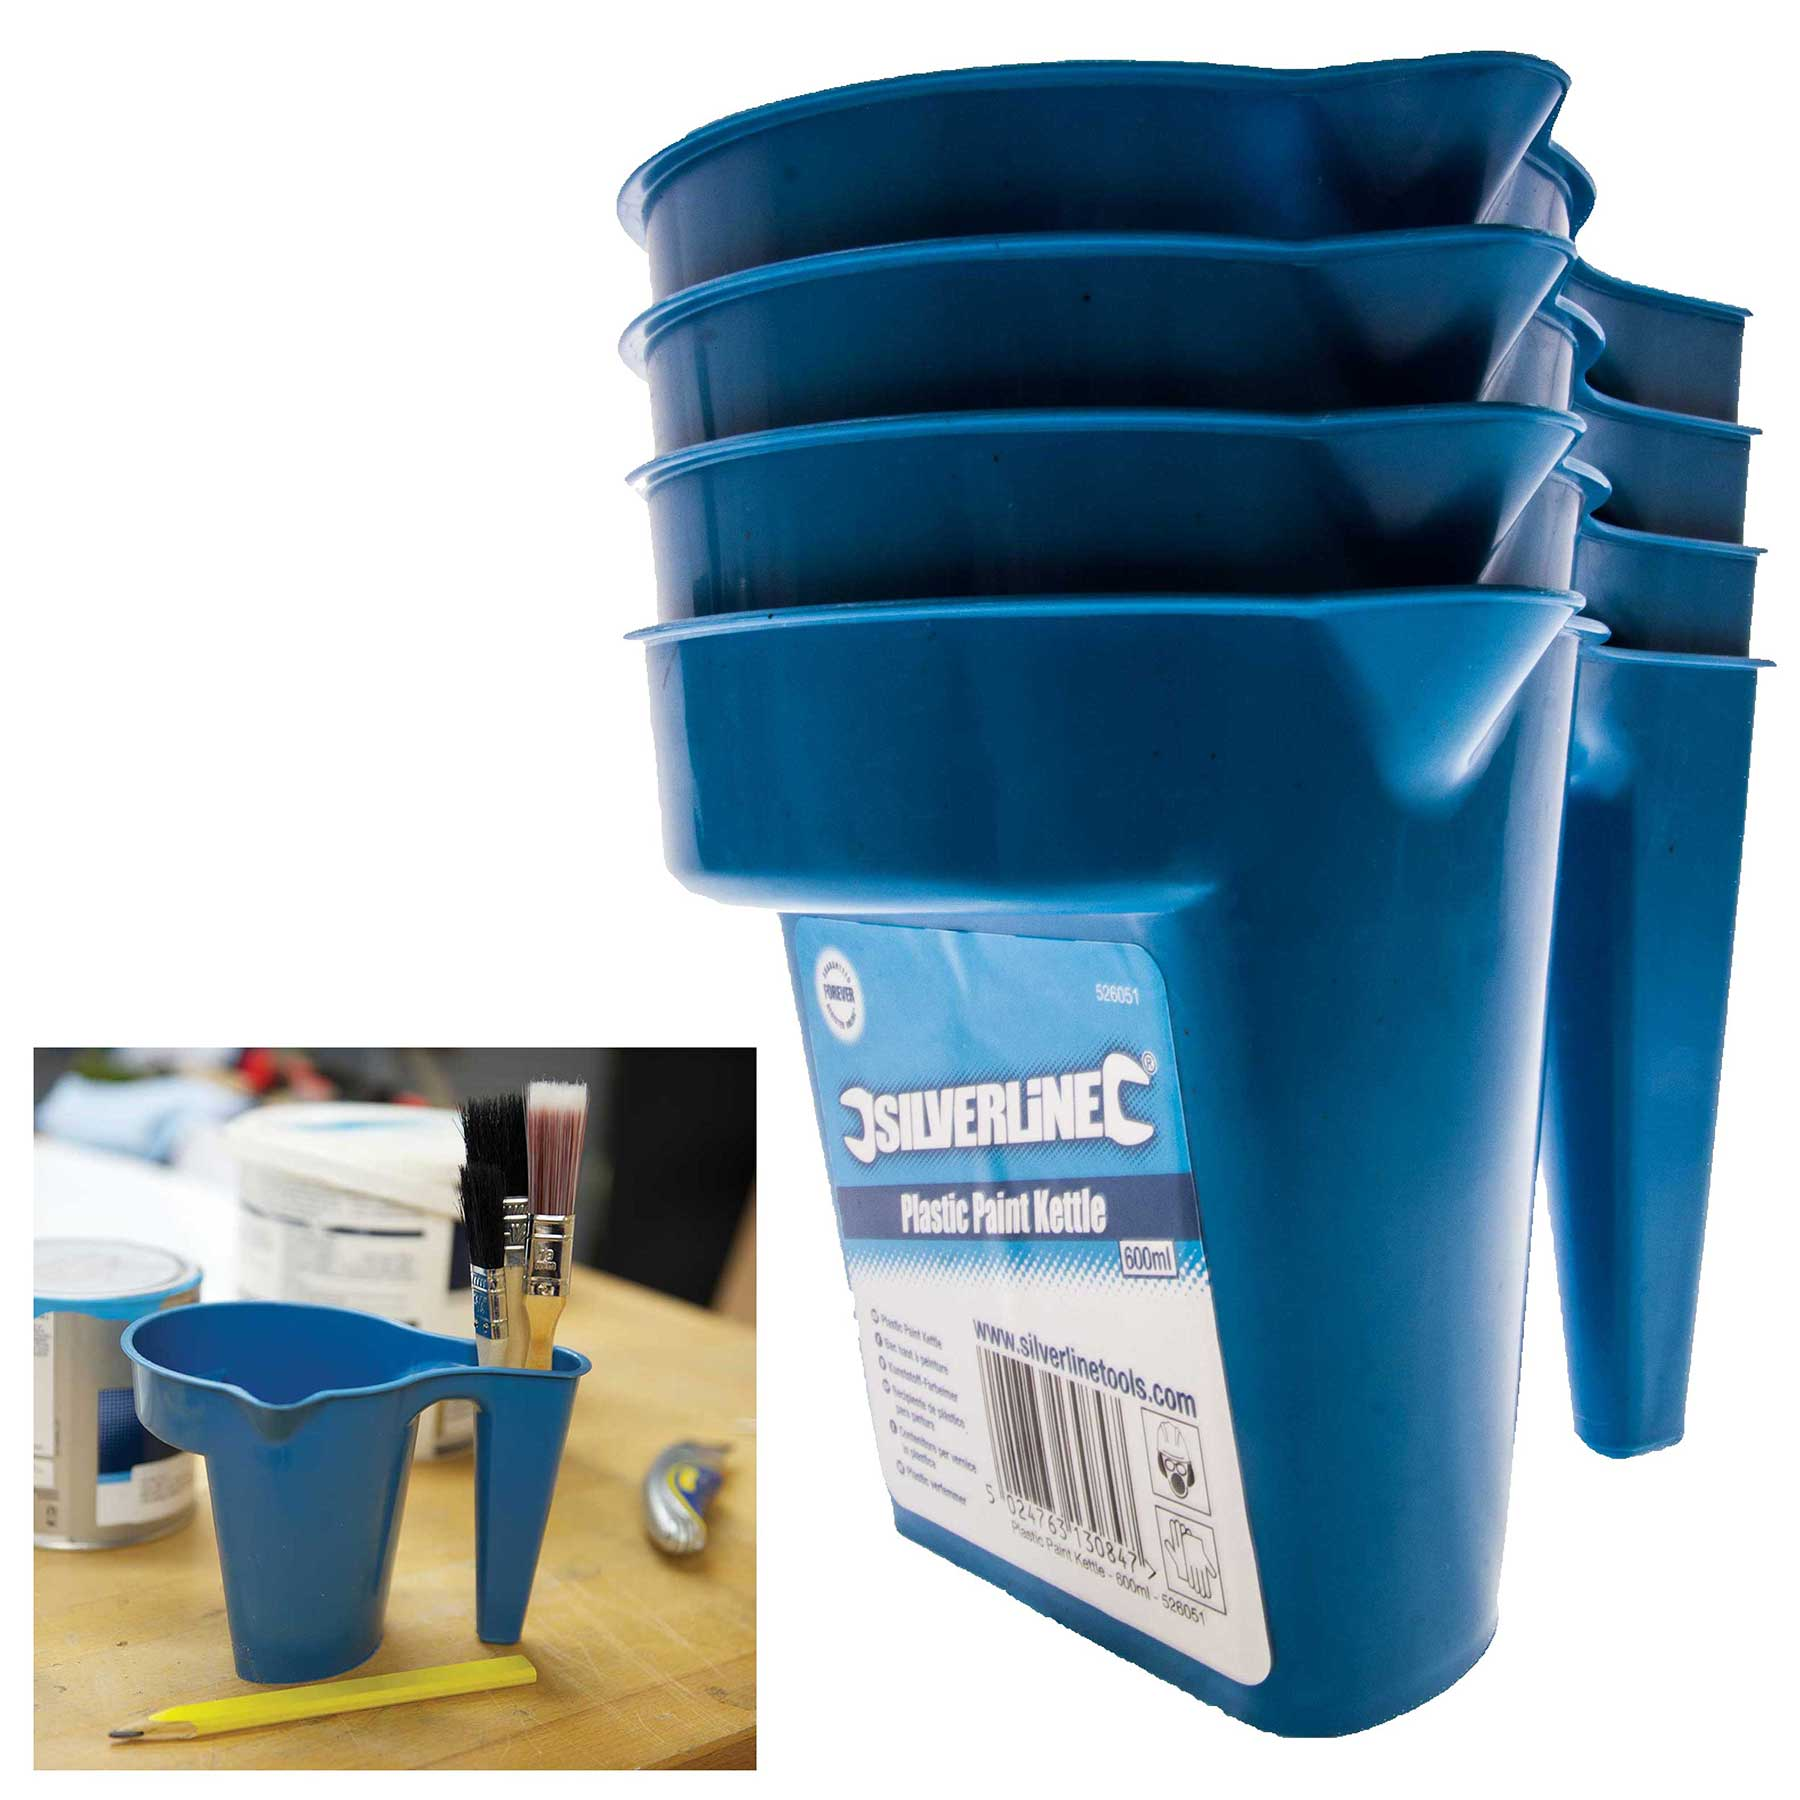 Silverline plastic paint kettle ml pack of